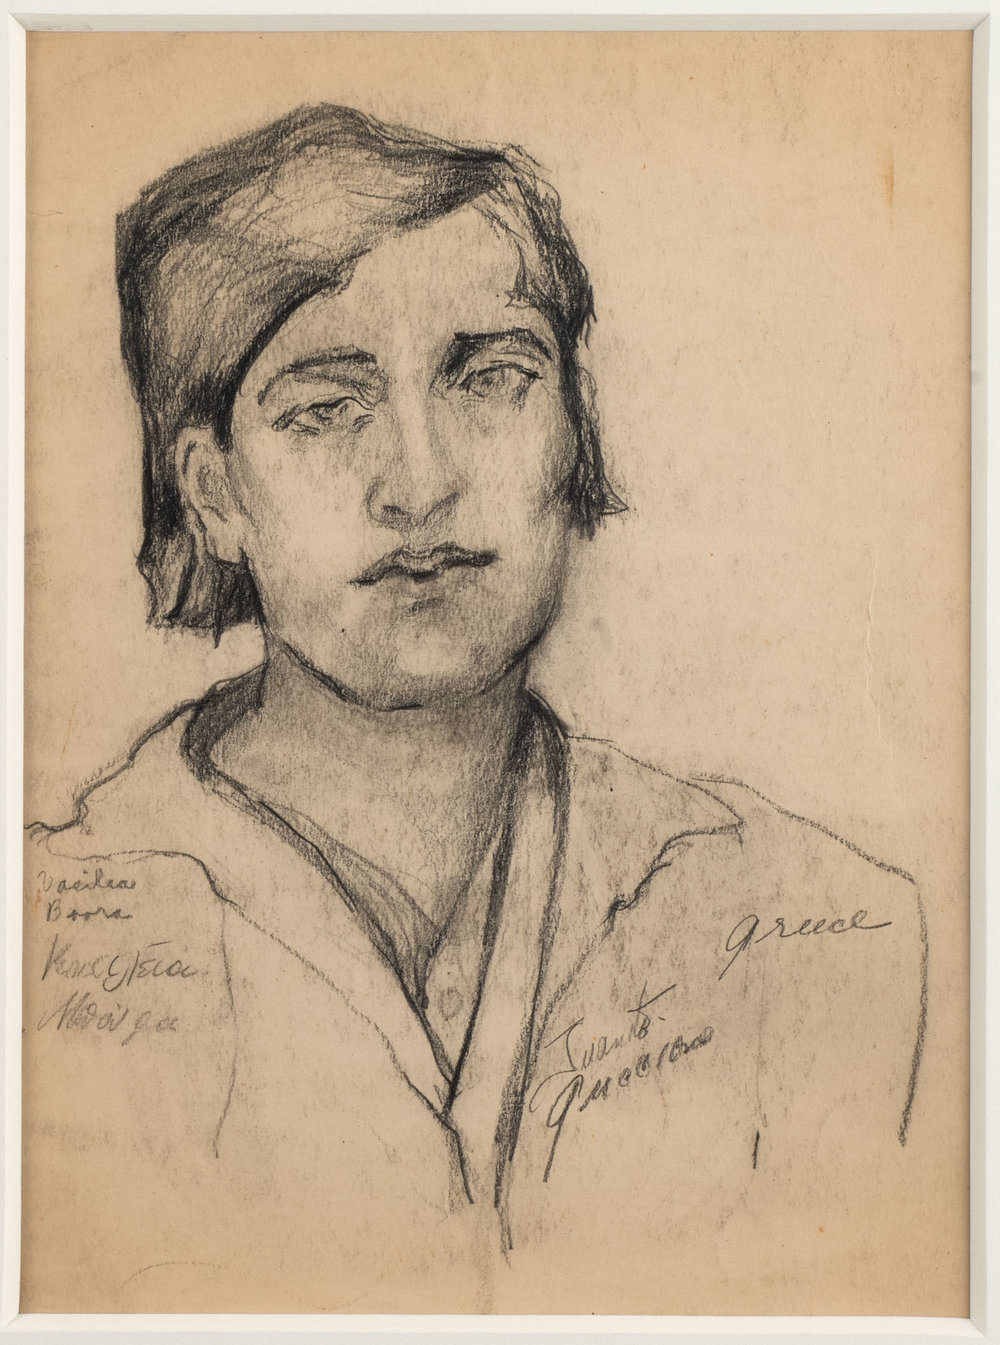 Head of a Woman (Greece, Vasilia Boorea), n.d., Pencil on paper,  11 1/2 x 8 1/2, $ 3,800 (SOLD)